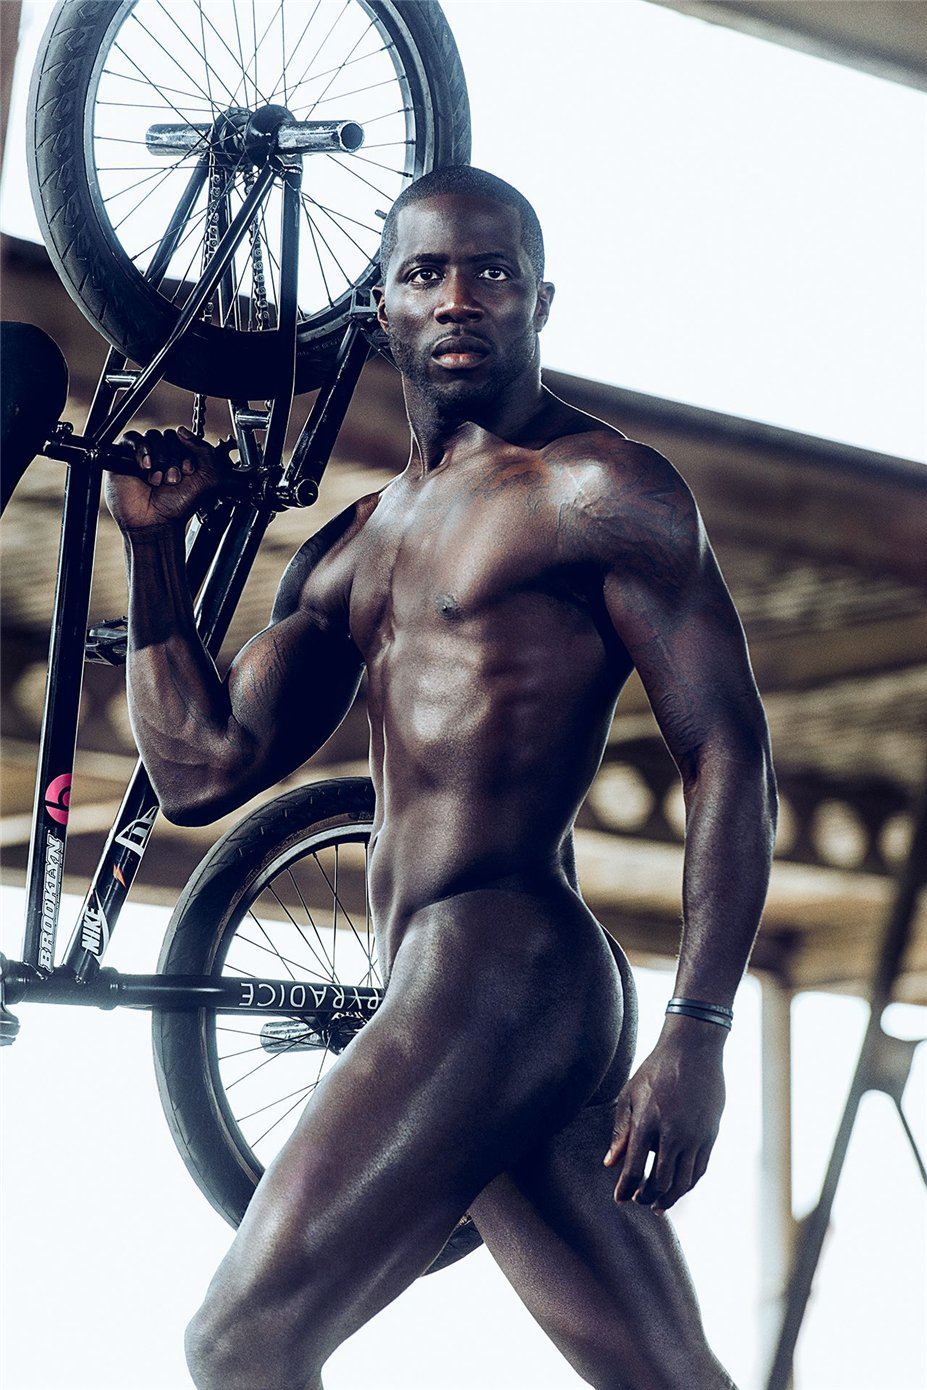 ESPN Magazine Body Issue 2014 - Nigel Sylvester / Найджел Сильвестр